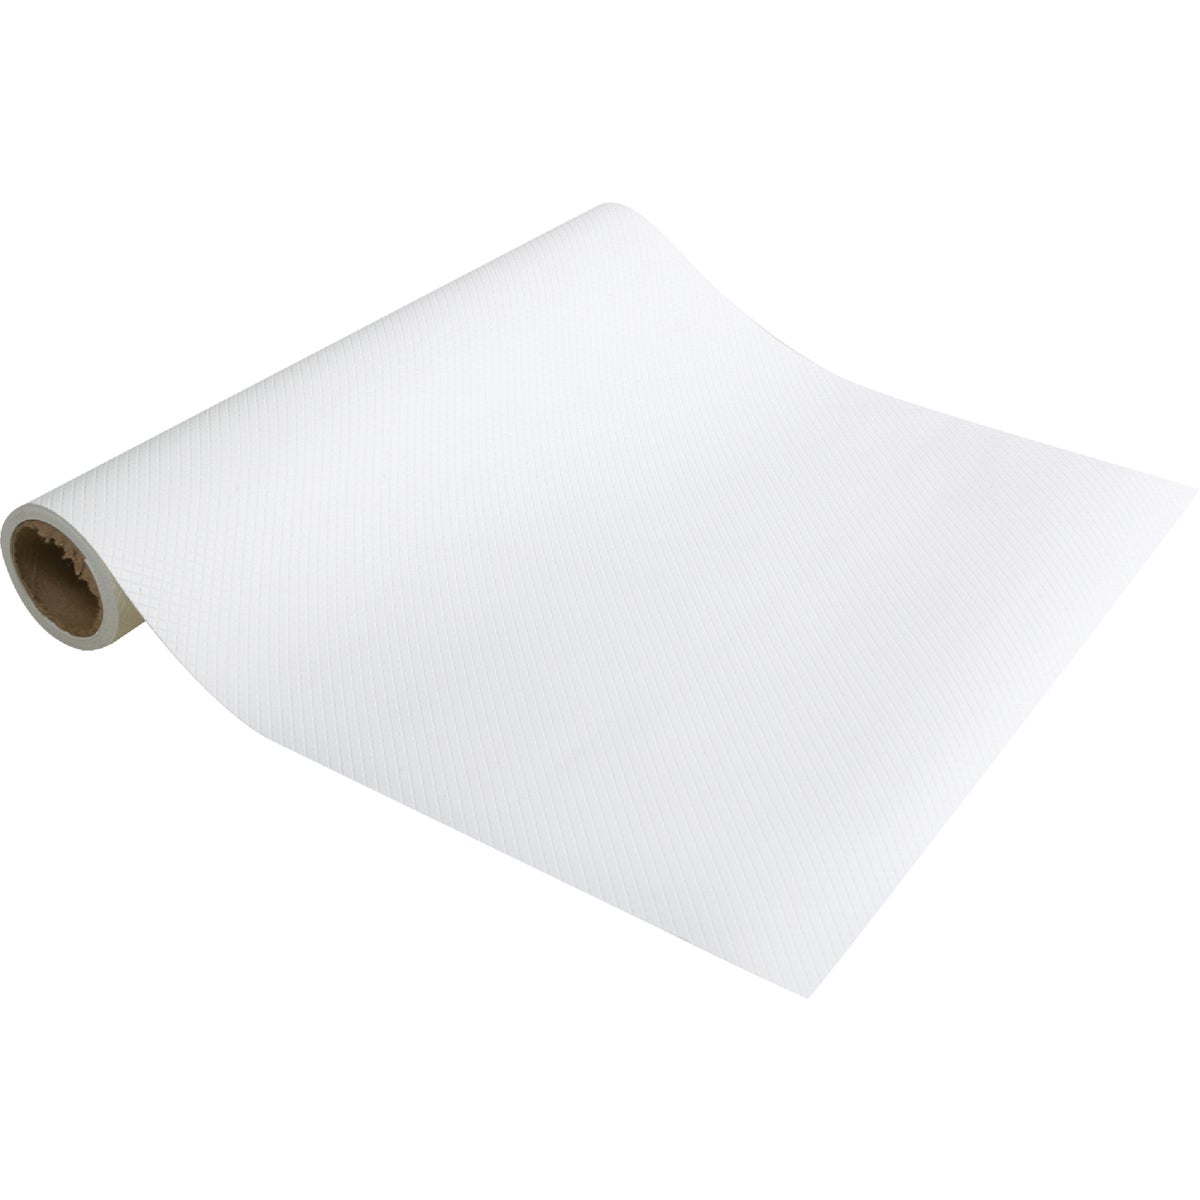 "12""X5' WHT DIAM LINER - 05F-C5T11-01 by Kittrich Corp"